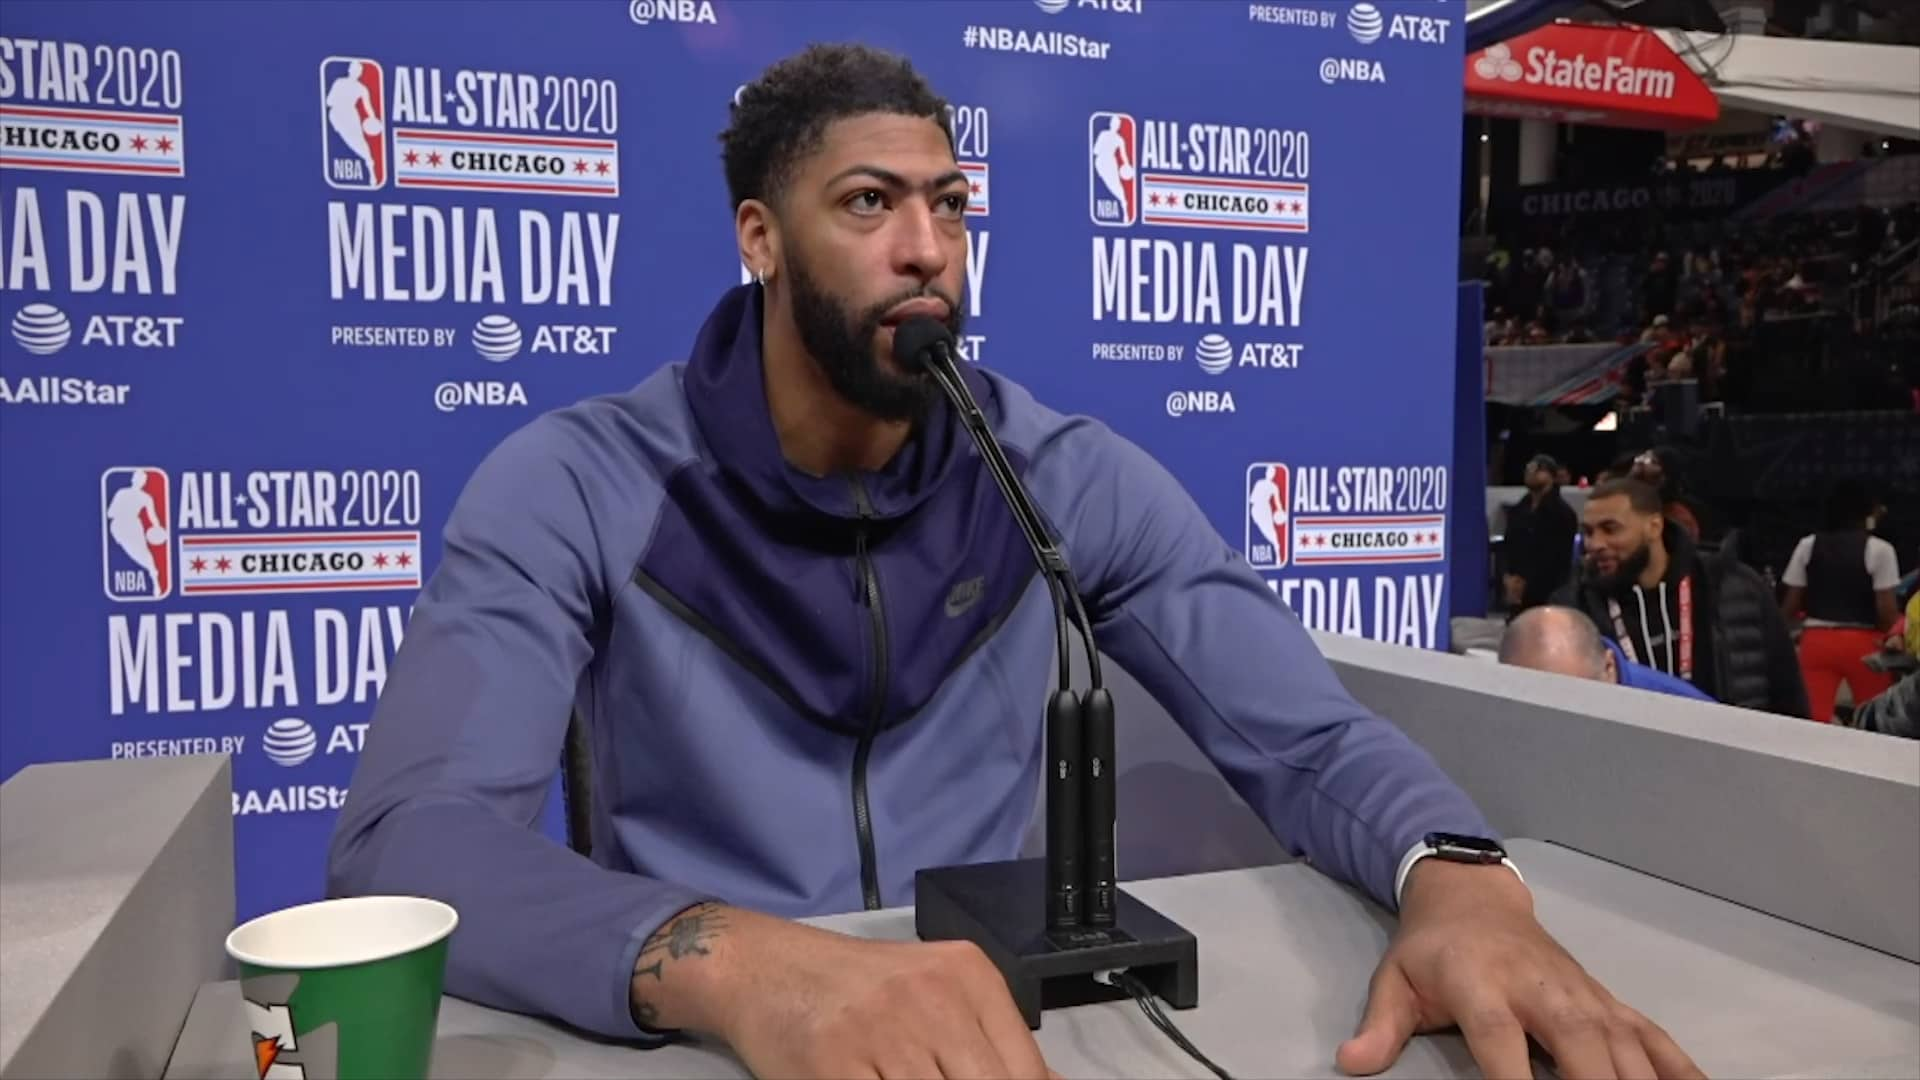 Lakers All-Star Media Day: Anthony Davis (2/15/20)